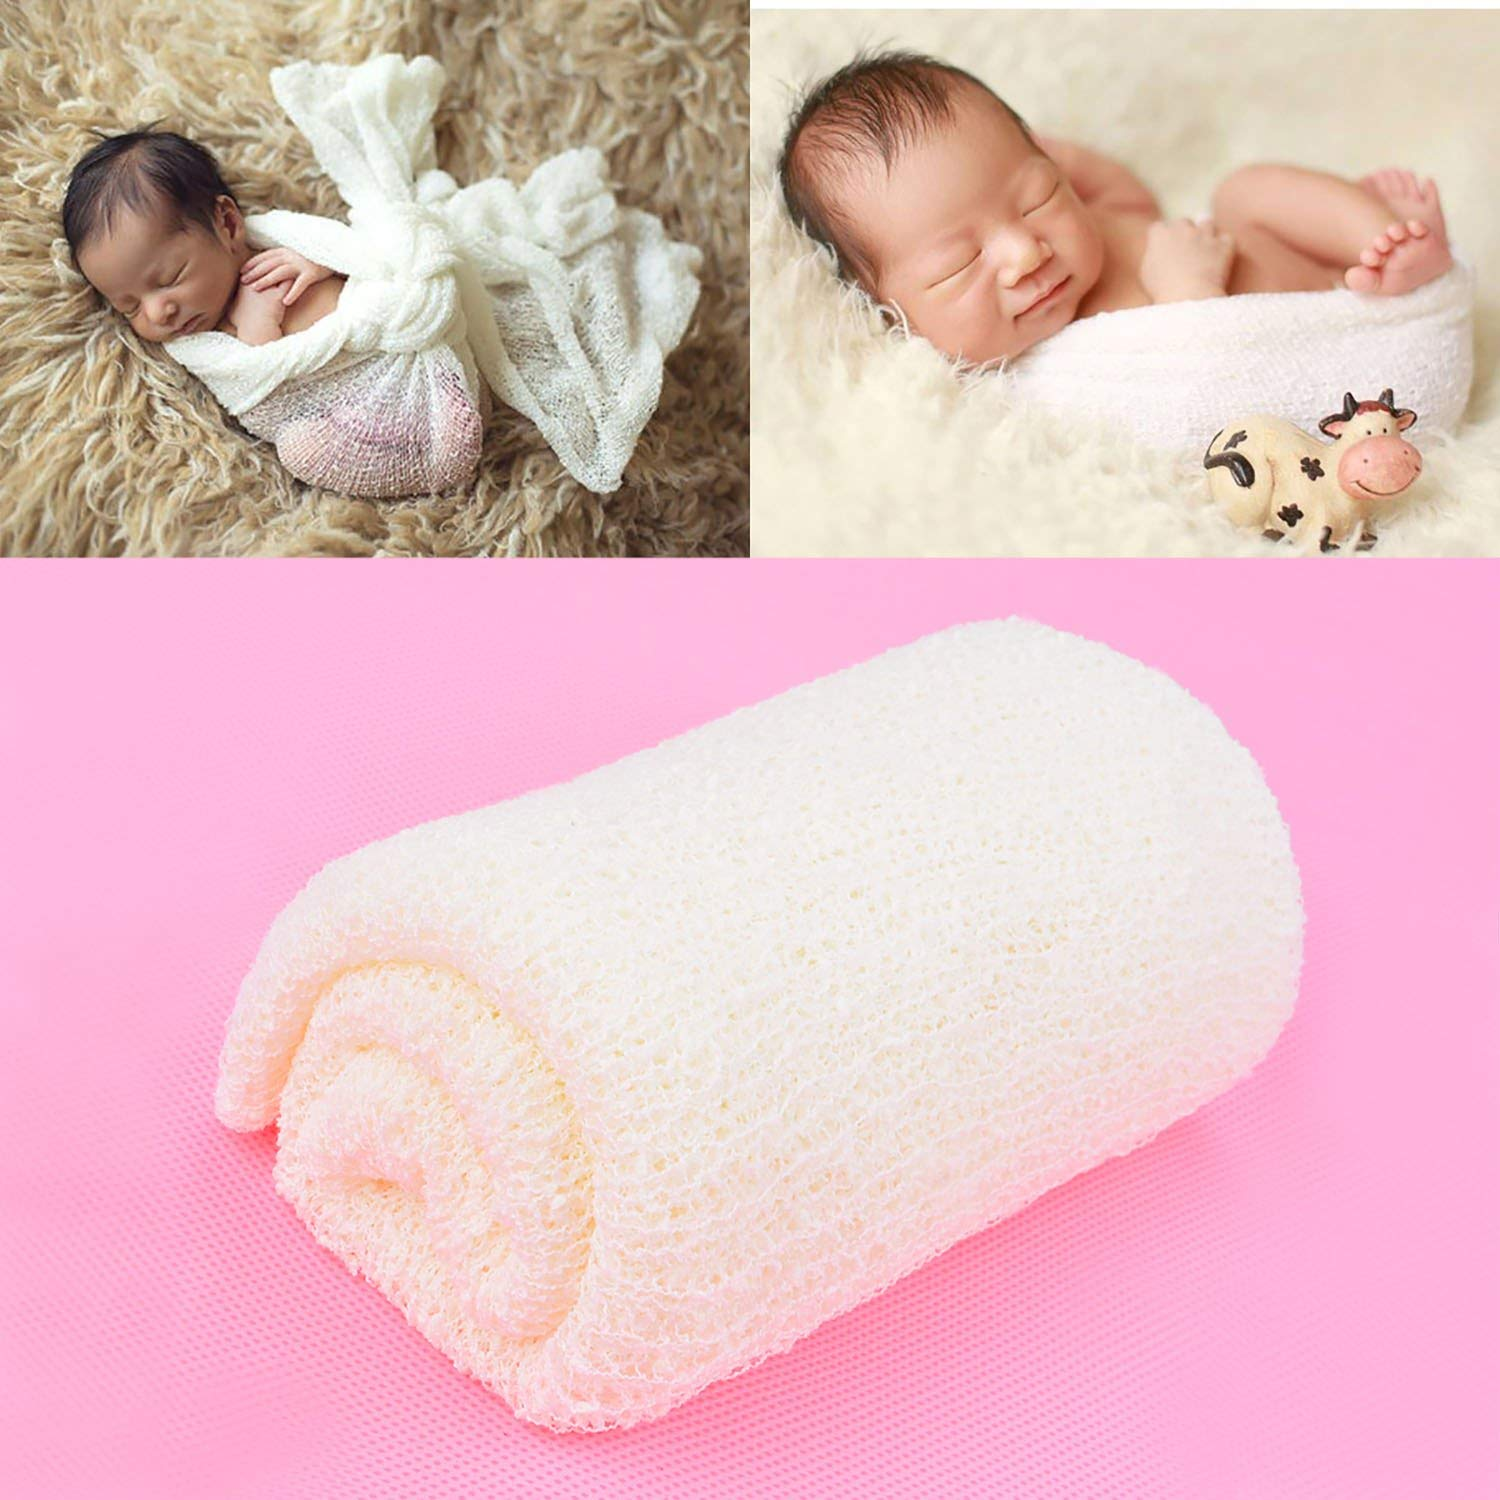 12133a912d5 Get Quotations · Aniwon 2Pcs Long Ripple Wrap Baby Photo Blanket Newborn  Photography Props Baby Shower Gifts